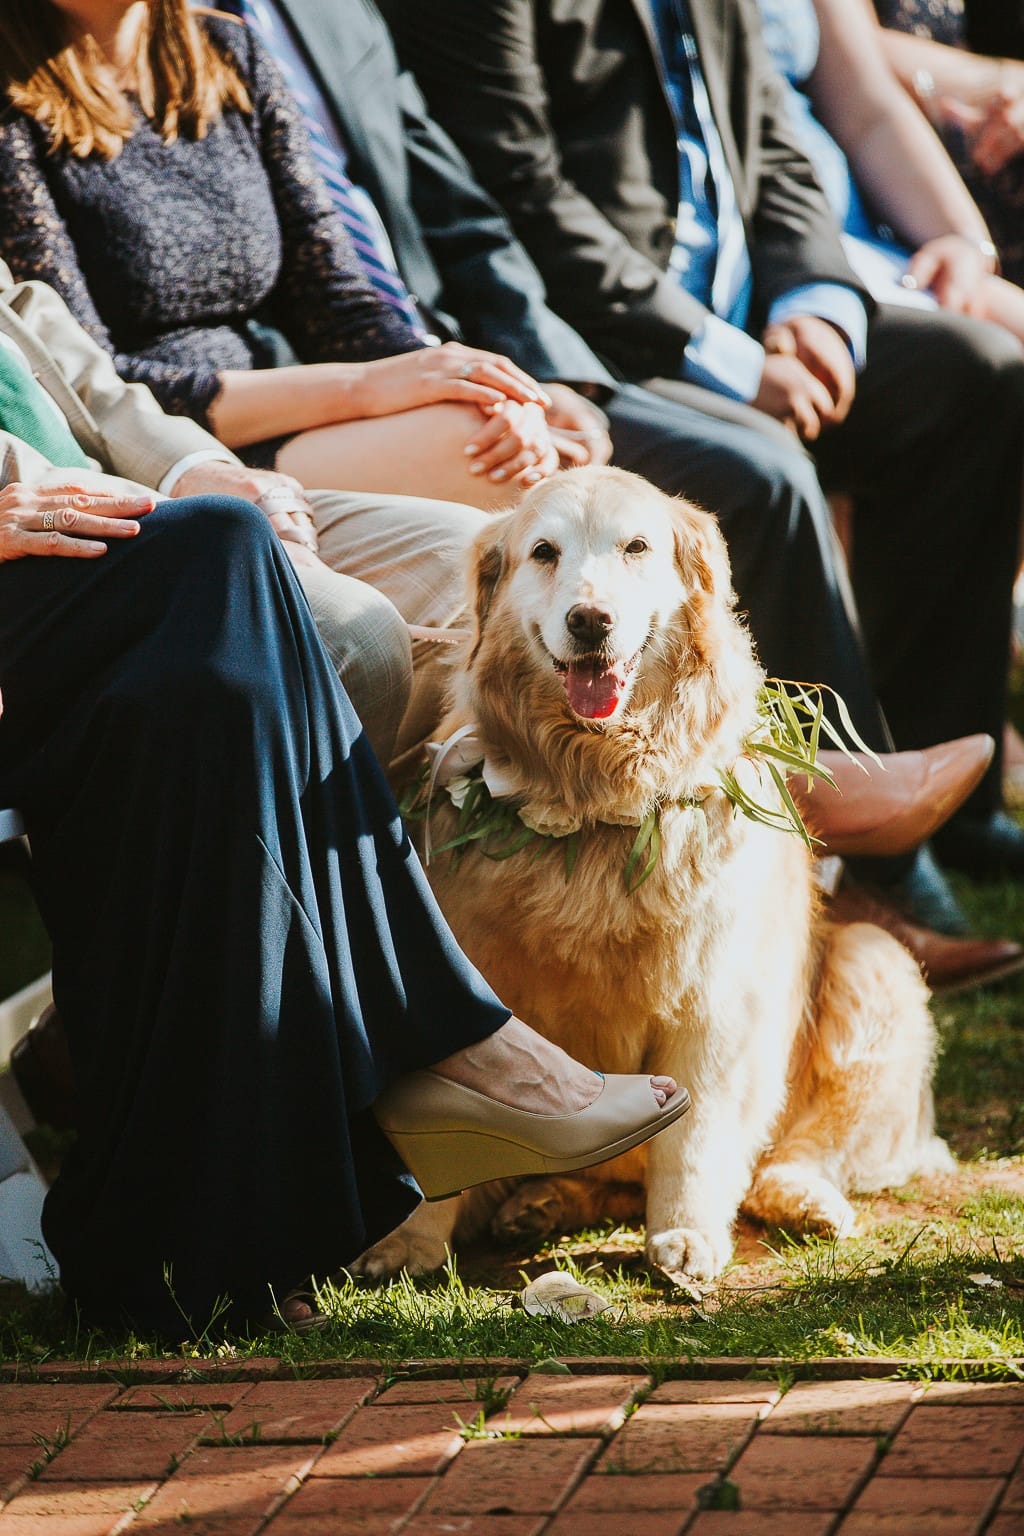 ALSO, our dog Molly, a 10 year old golden retriever is going to be our flower dog!!